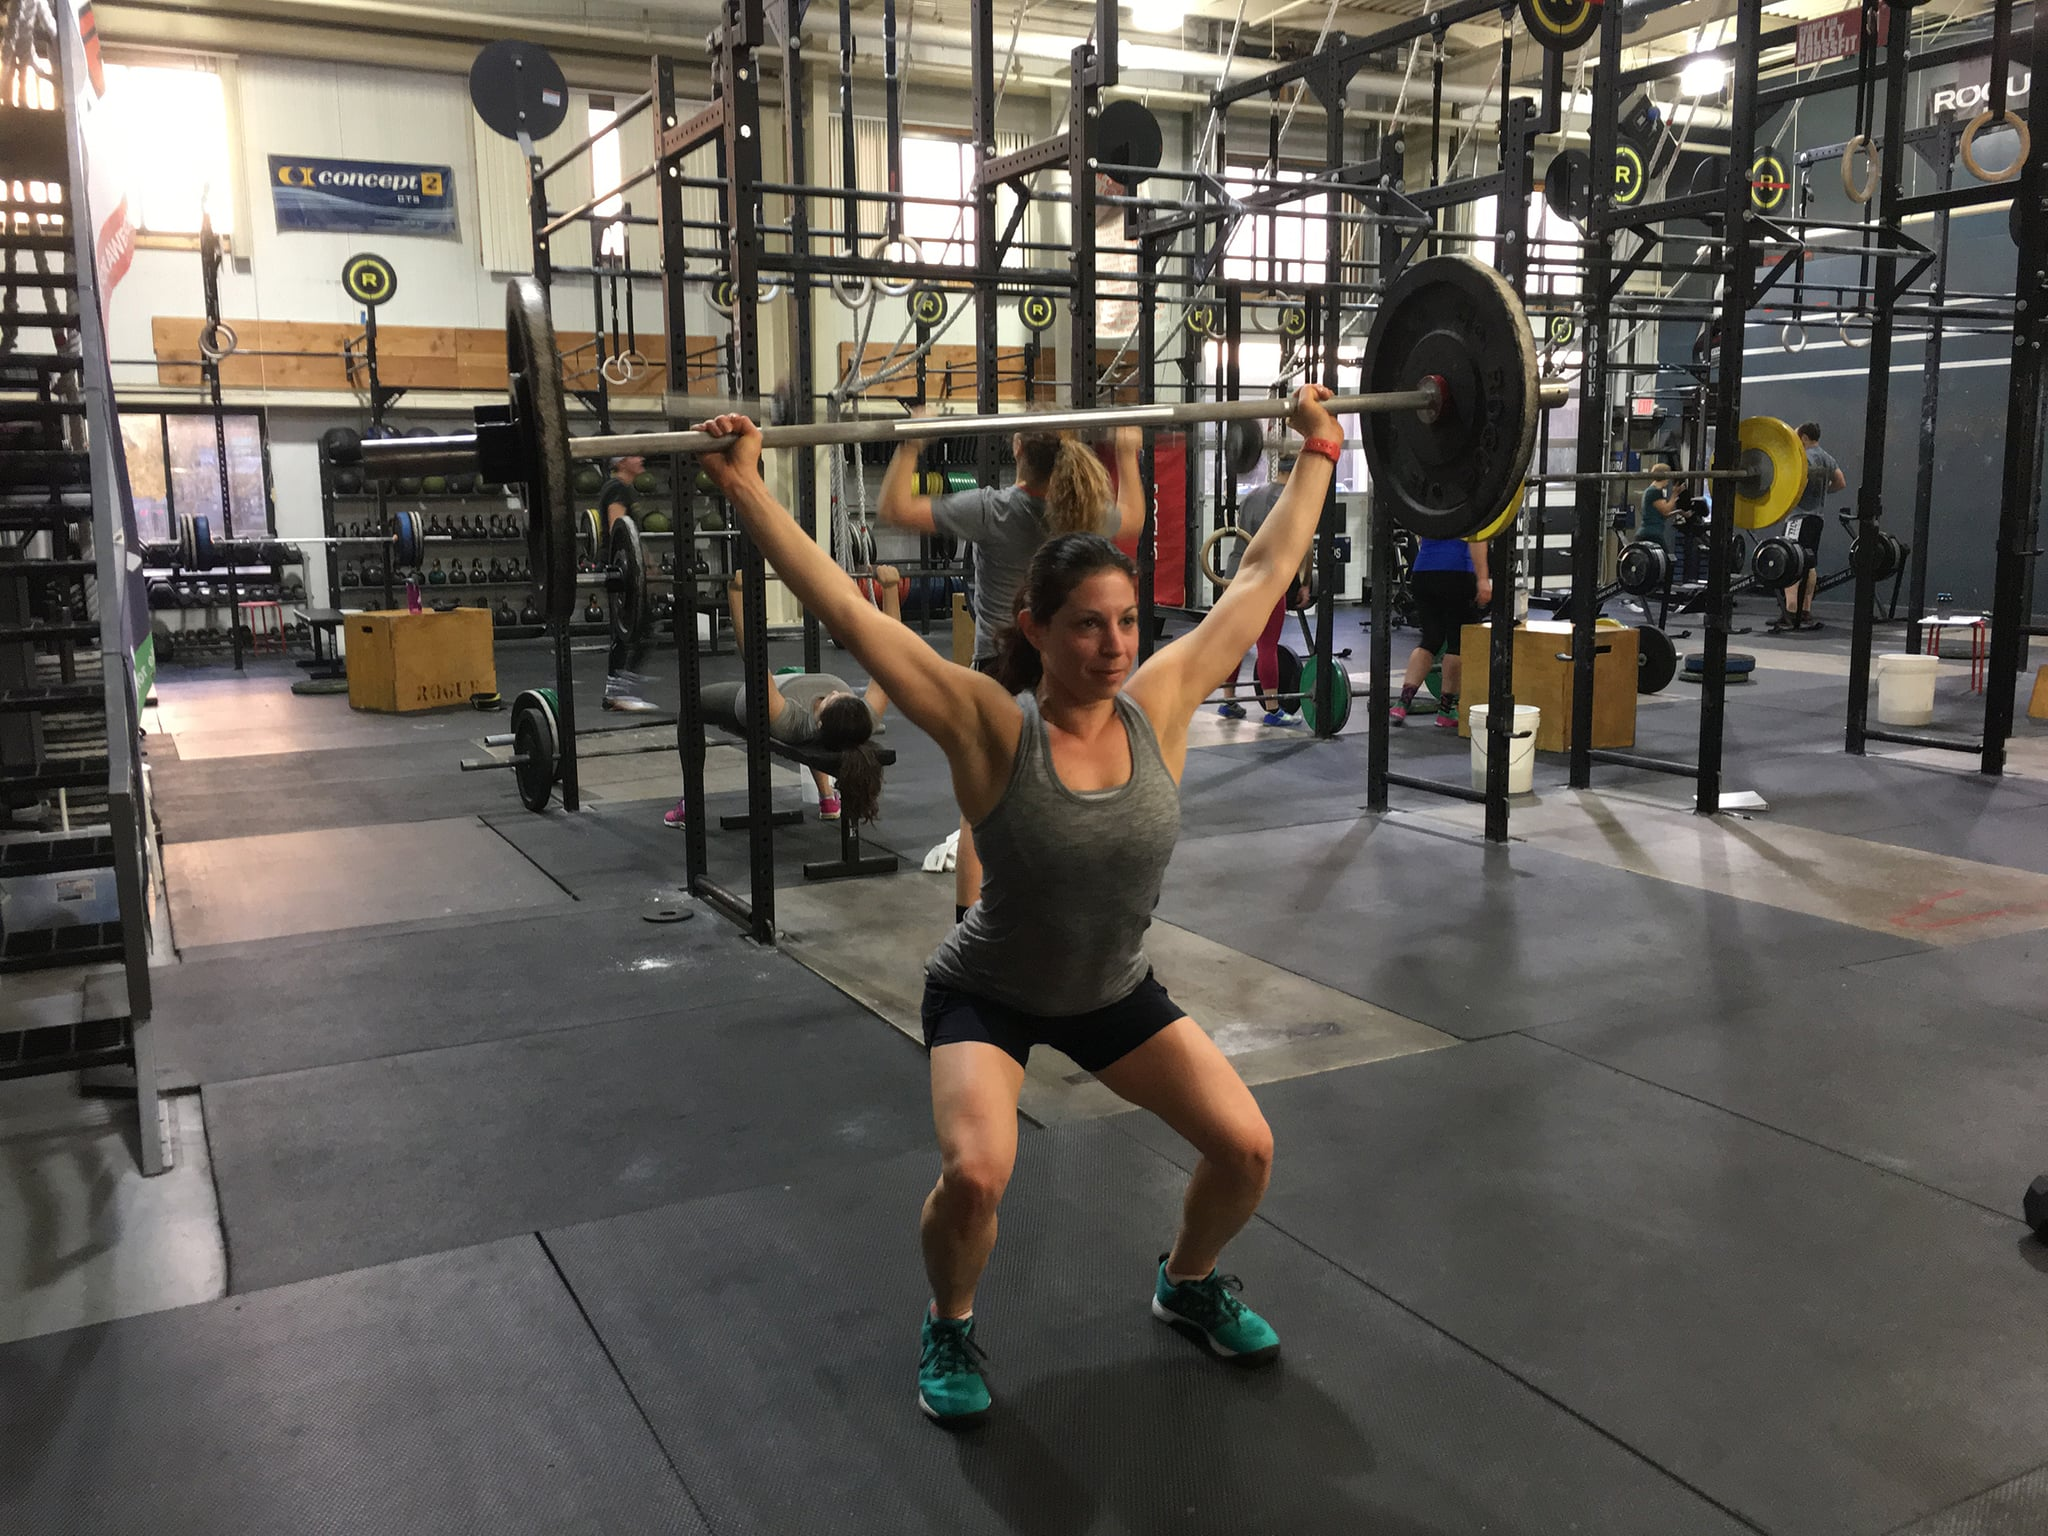 If You Want to Get Stronger, Follow This CrossFit Coach's Simple Advice